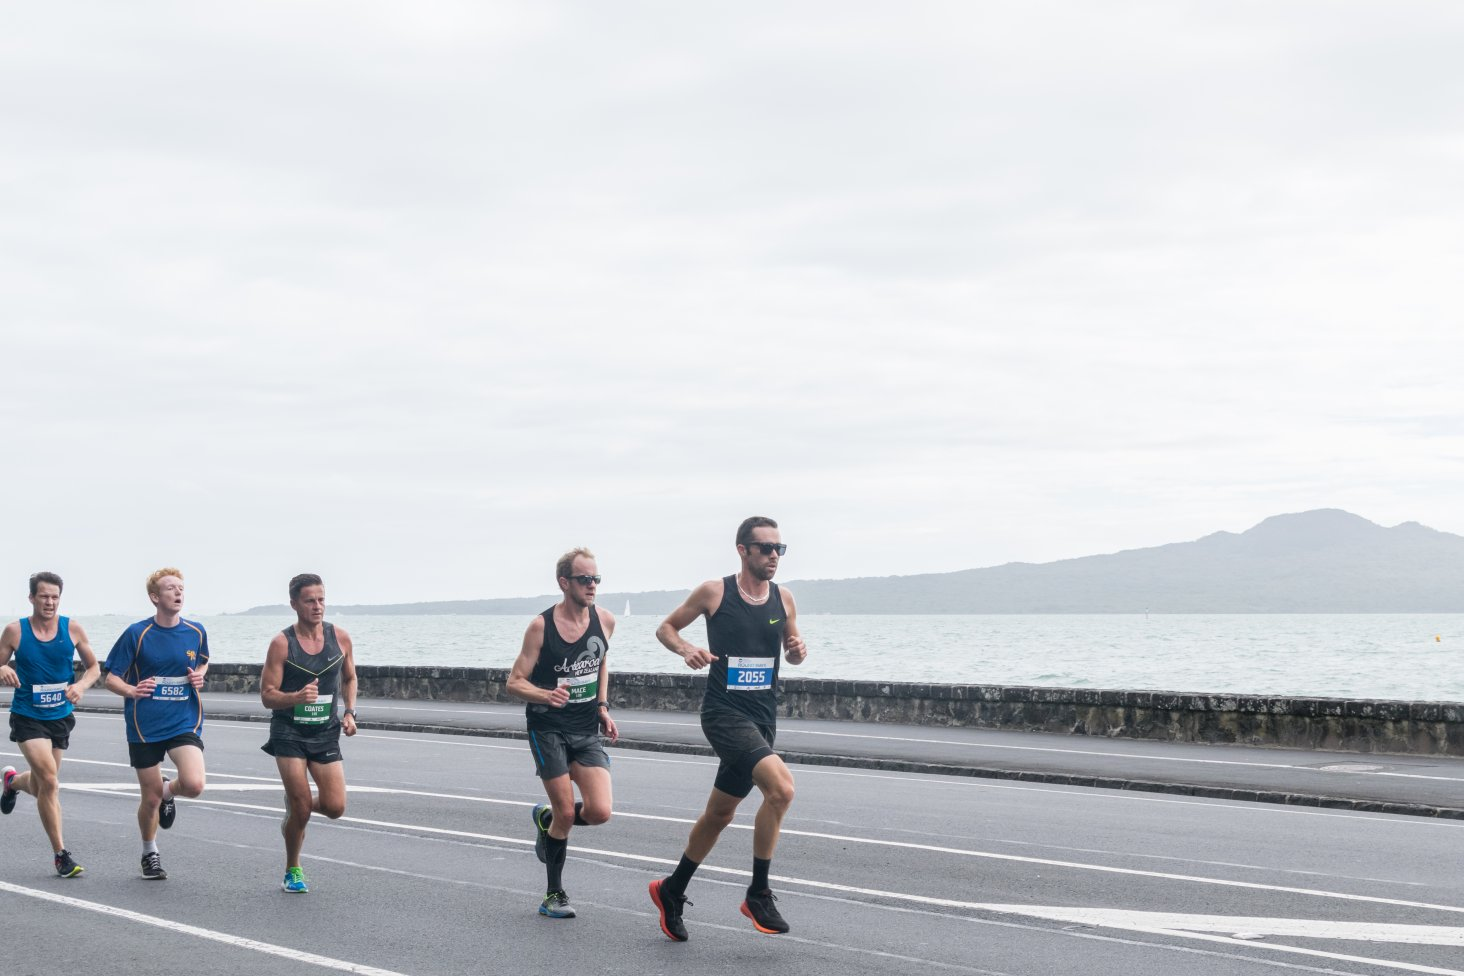 Ports of Auckland Round the Bays is an event for all abilities including competitive runners.